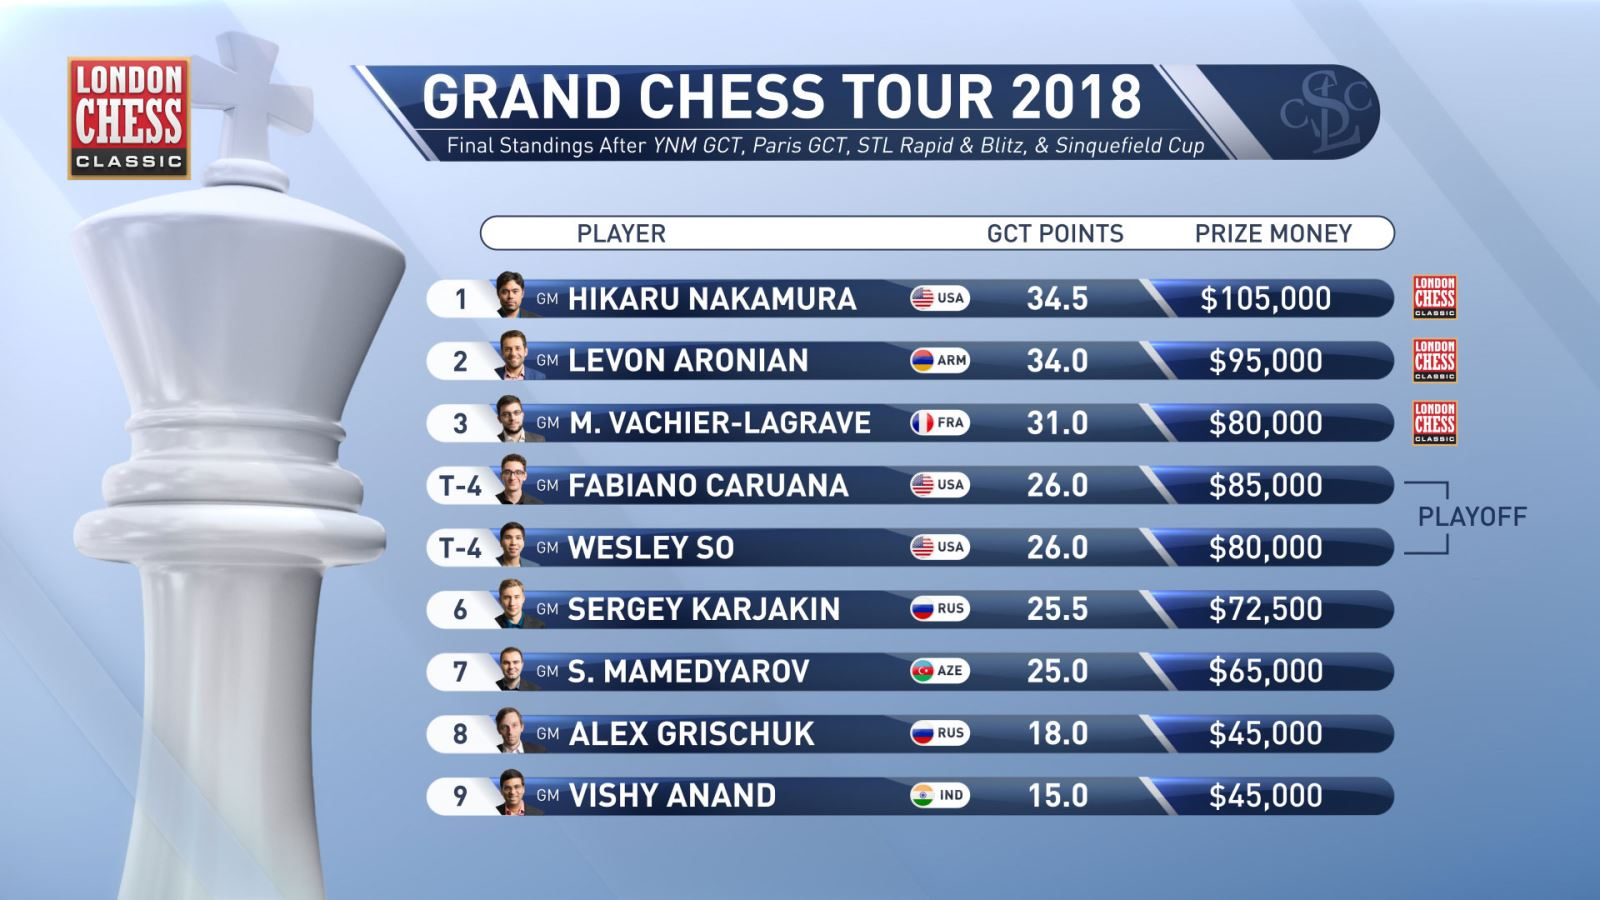 Grand Chess Tour final standings